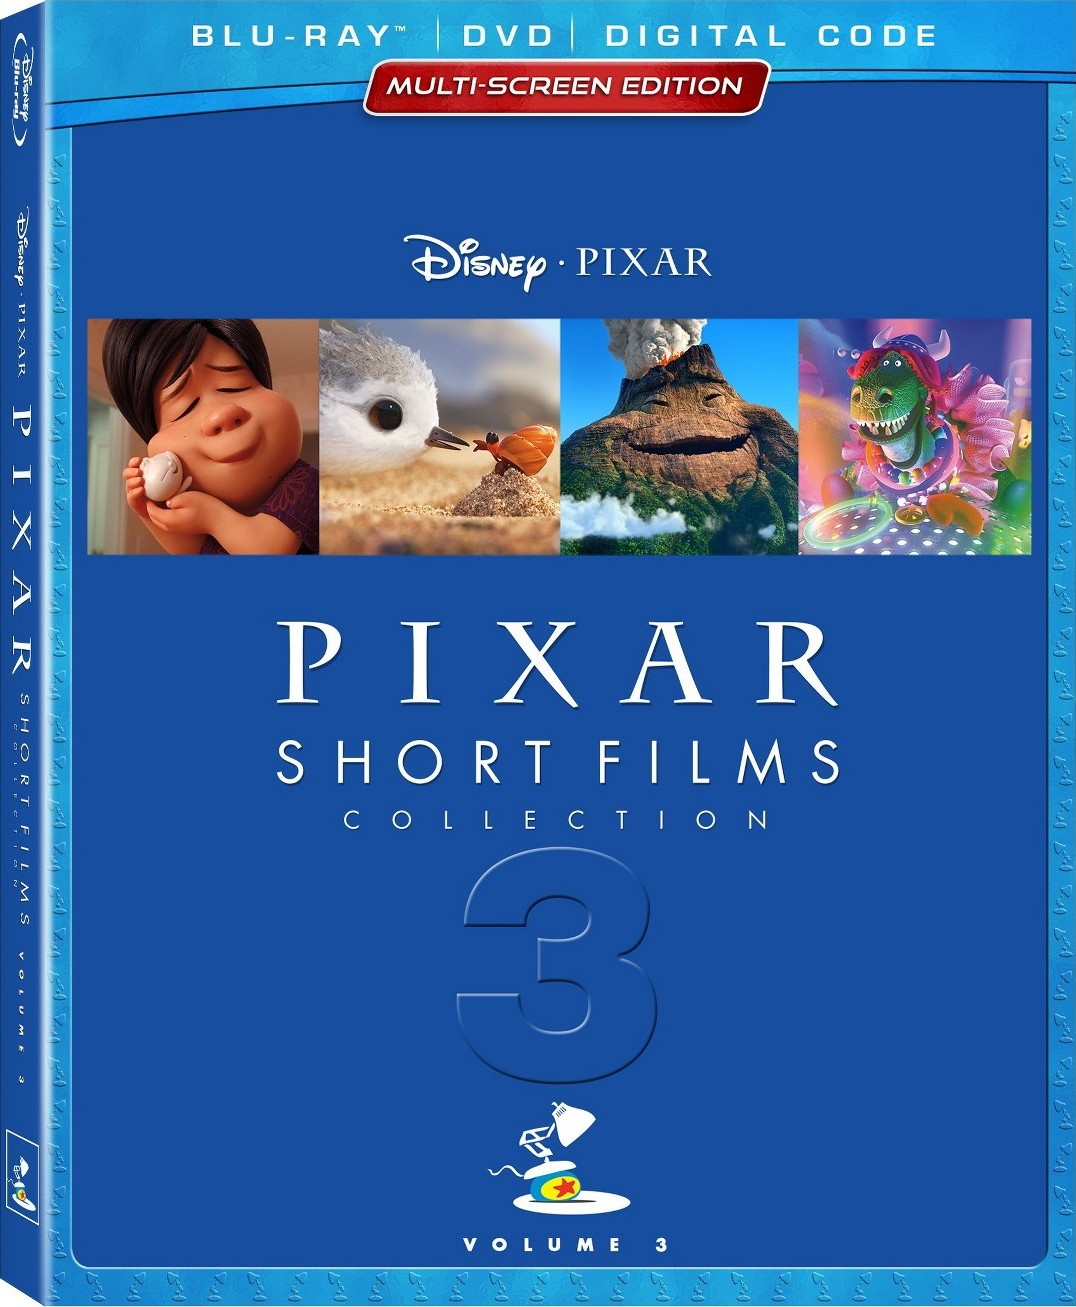 Pixar Short Films Collection: Vol. 3 (Blu-ray)(Region Free)